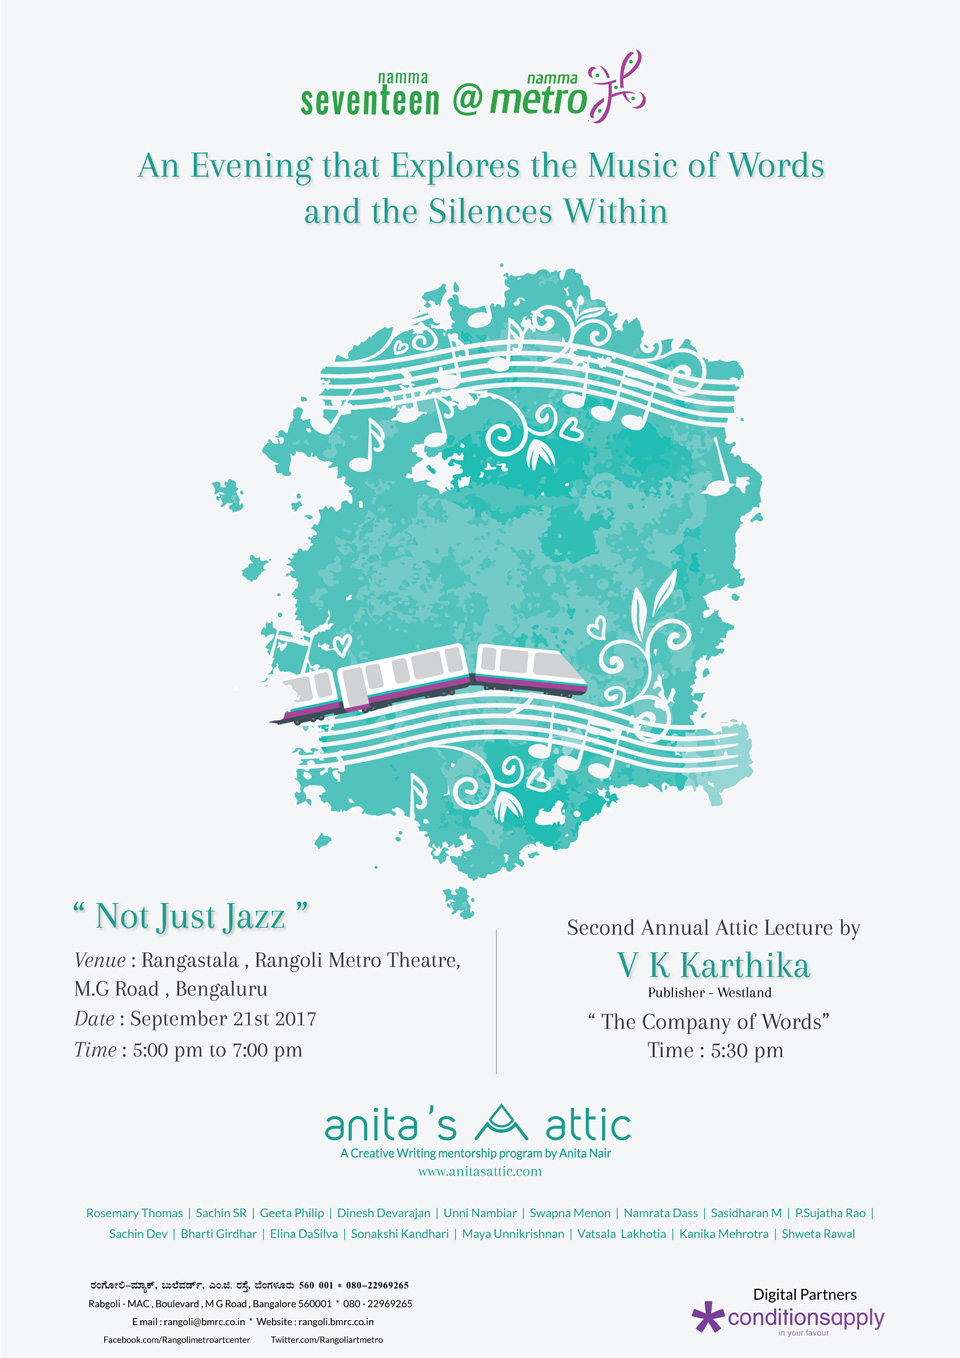 The-2nd-Anita's-Attic-Lecture-and-Season-5-Graduation-at-the-Bengaluru-Metro